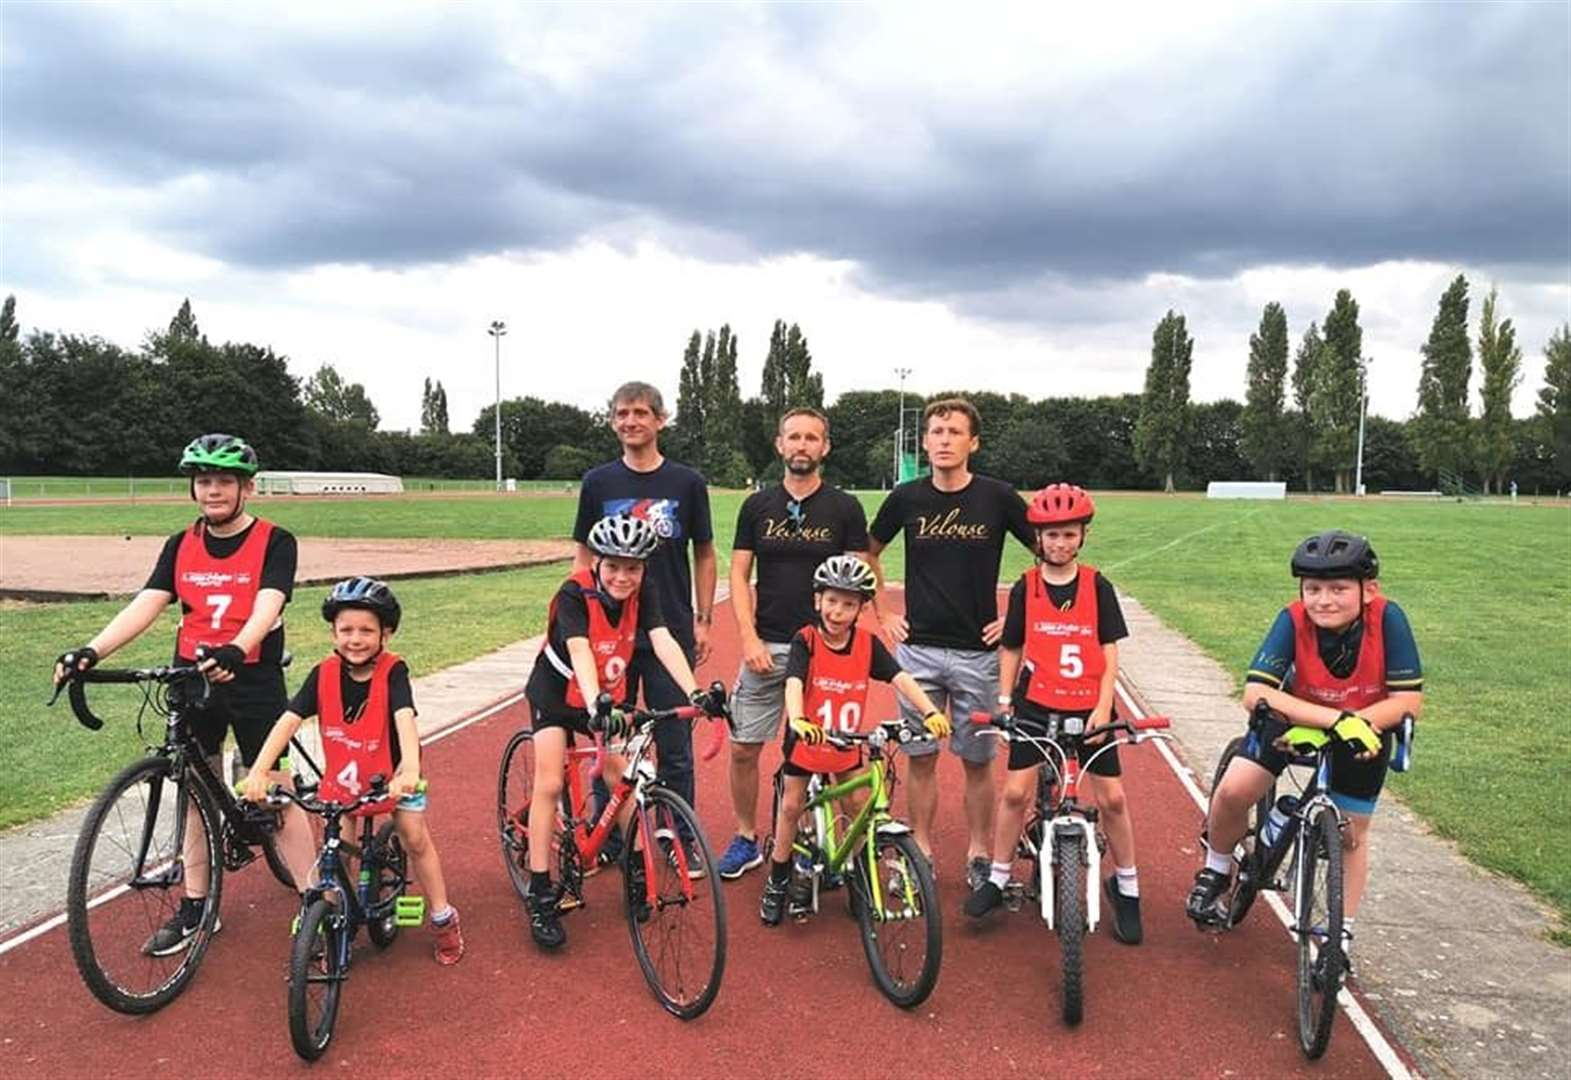 Lynn cycling juniors participate in first-ever competition